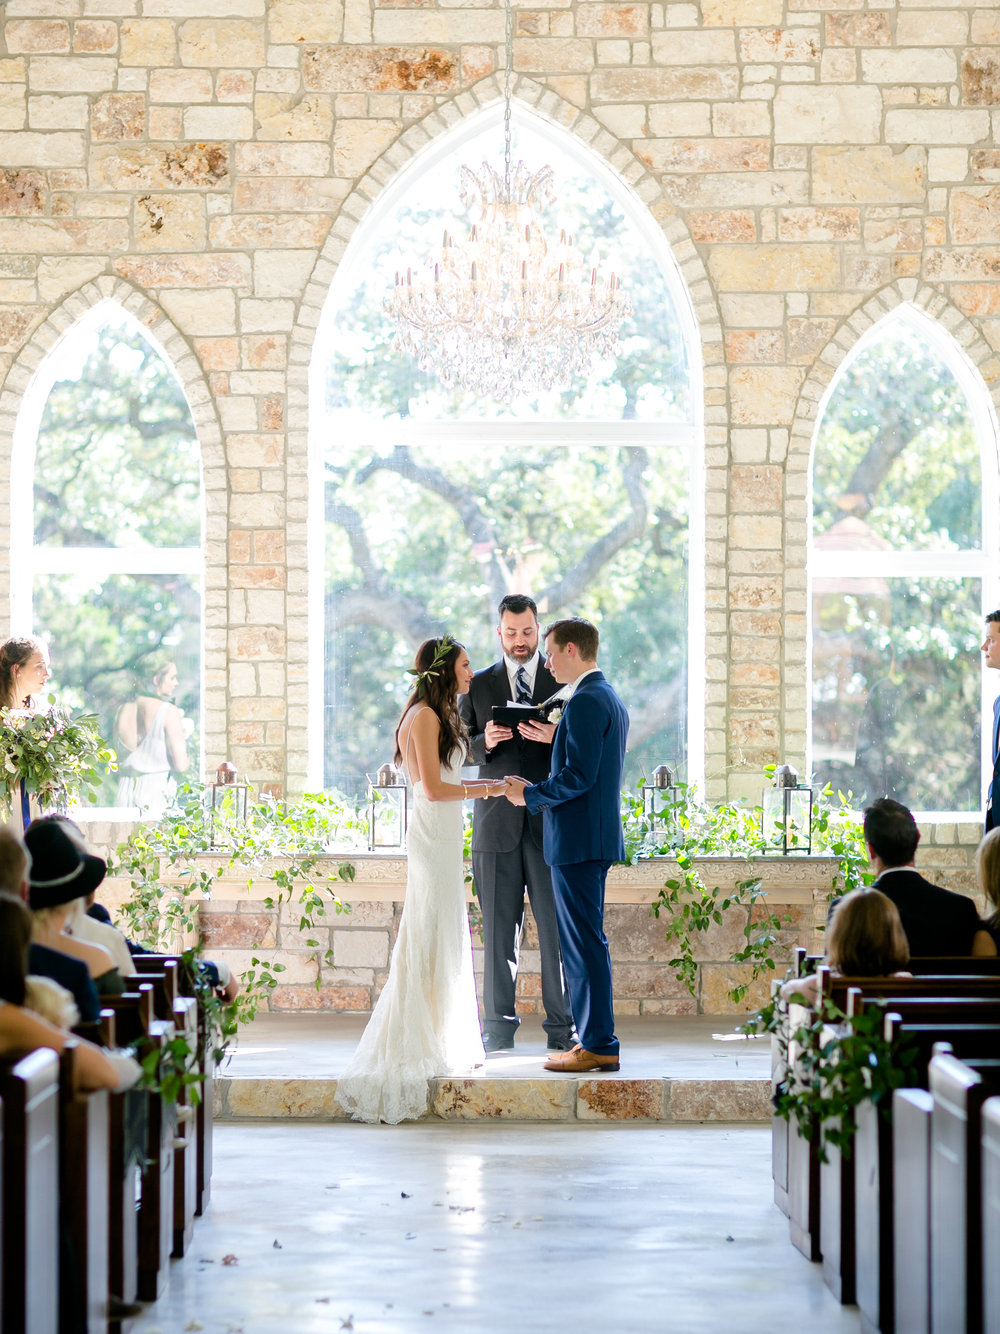 Chandelier_of_Gruene_Wedding_Summer_Barrett-318.jpg